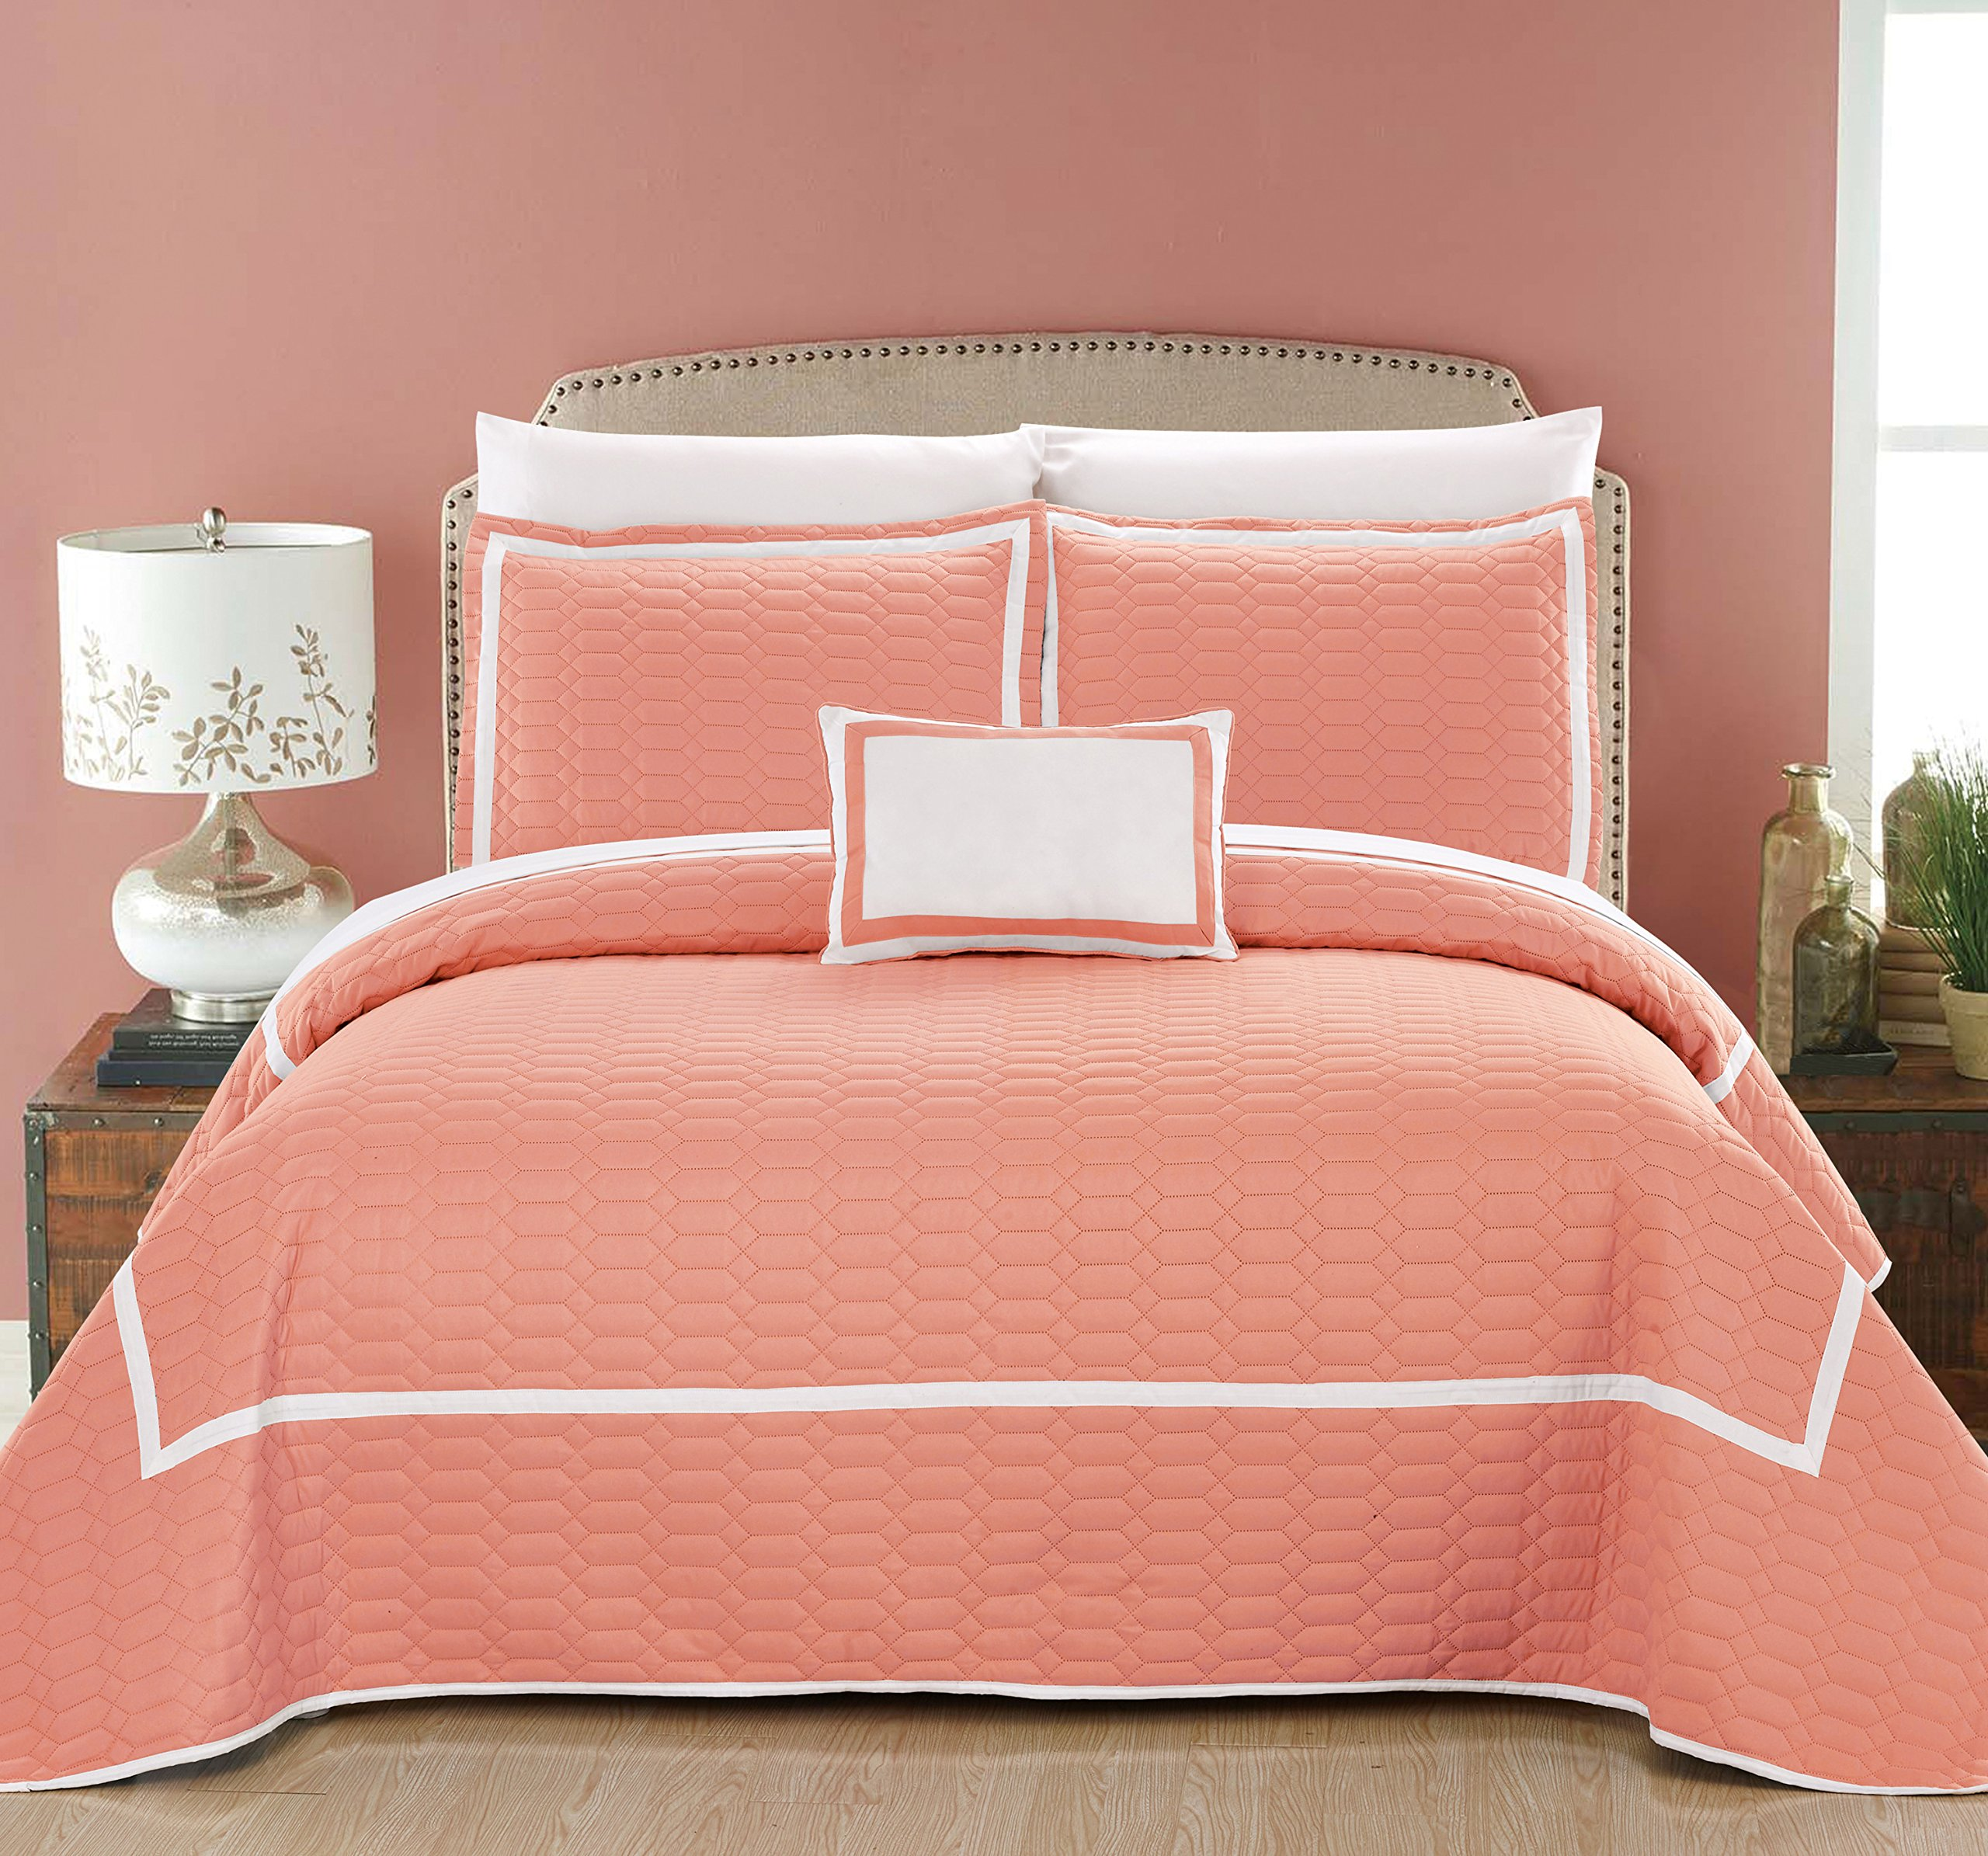 Chic Home Xavier 8 Piece Quilt Cover Set Hotel Collection Two Tone Banded Geometric Quilted Bed in a Bag Bedding - Sheets Decorative Pillow Shams Included, King Coral Red